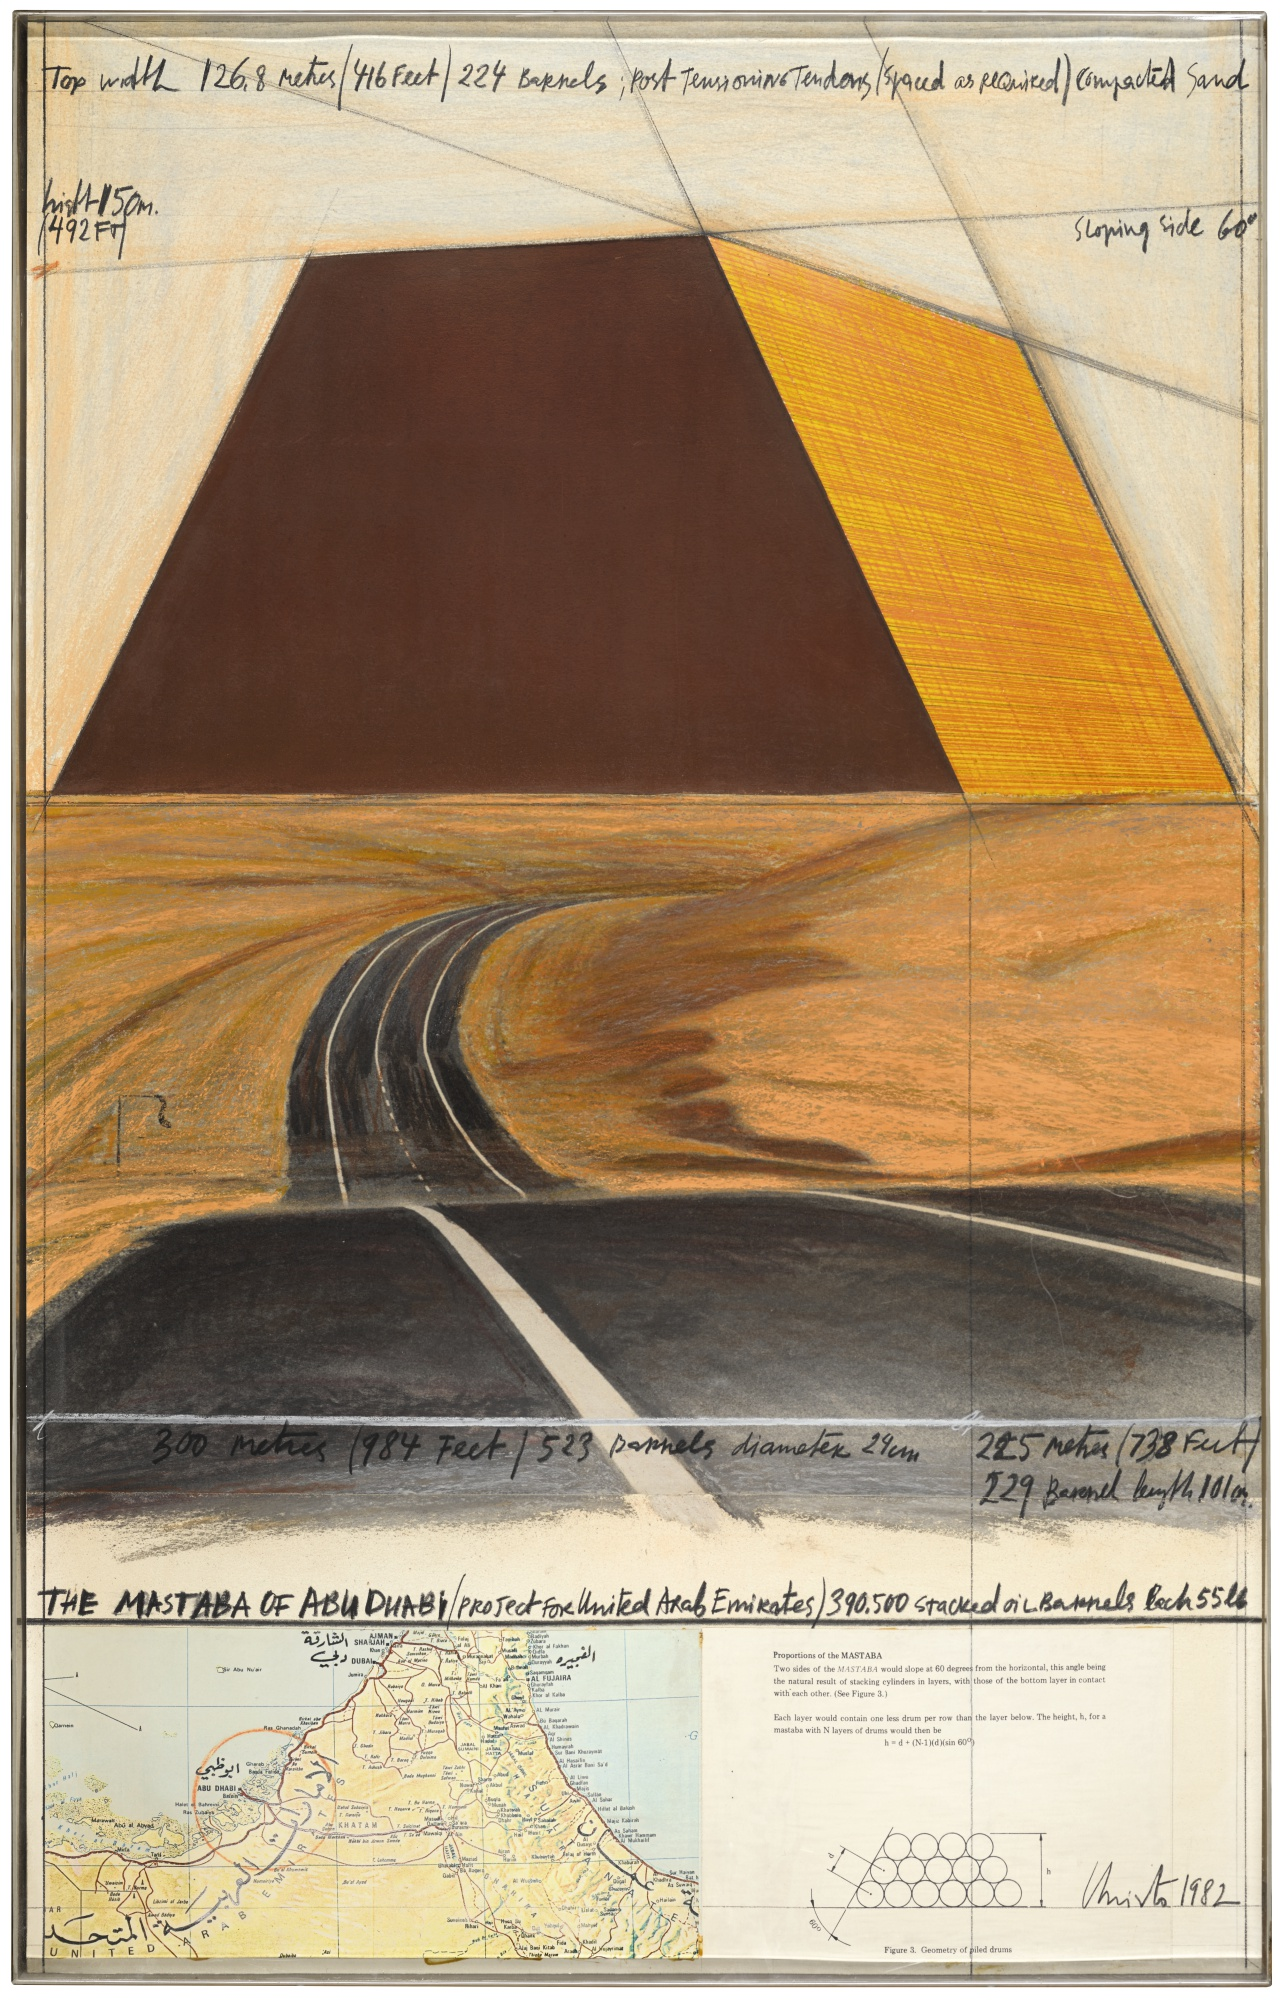 Christo and Jeanne-Claude-The Mastaba Of Abu Dhabi (Project For United Arab Emirates)-1982